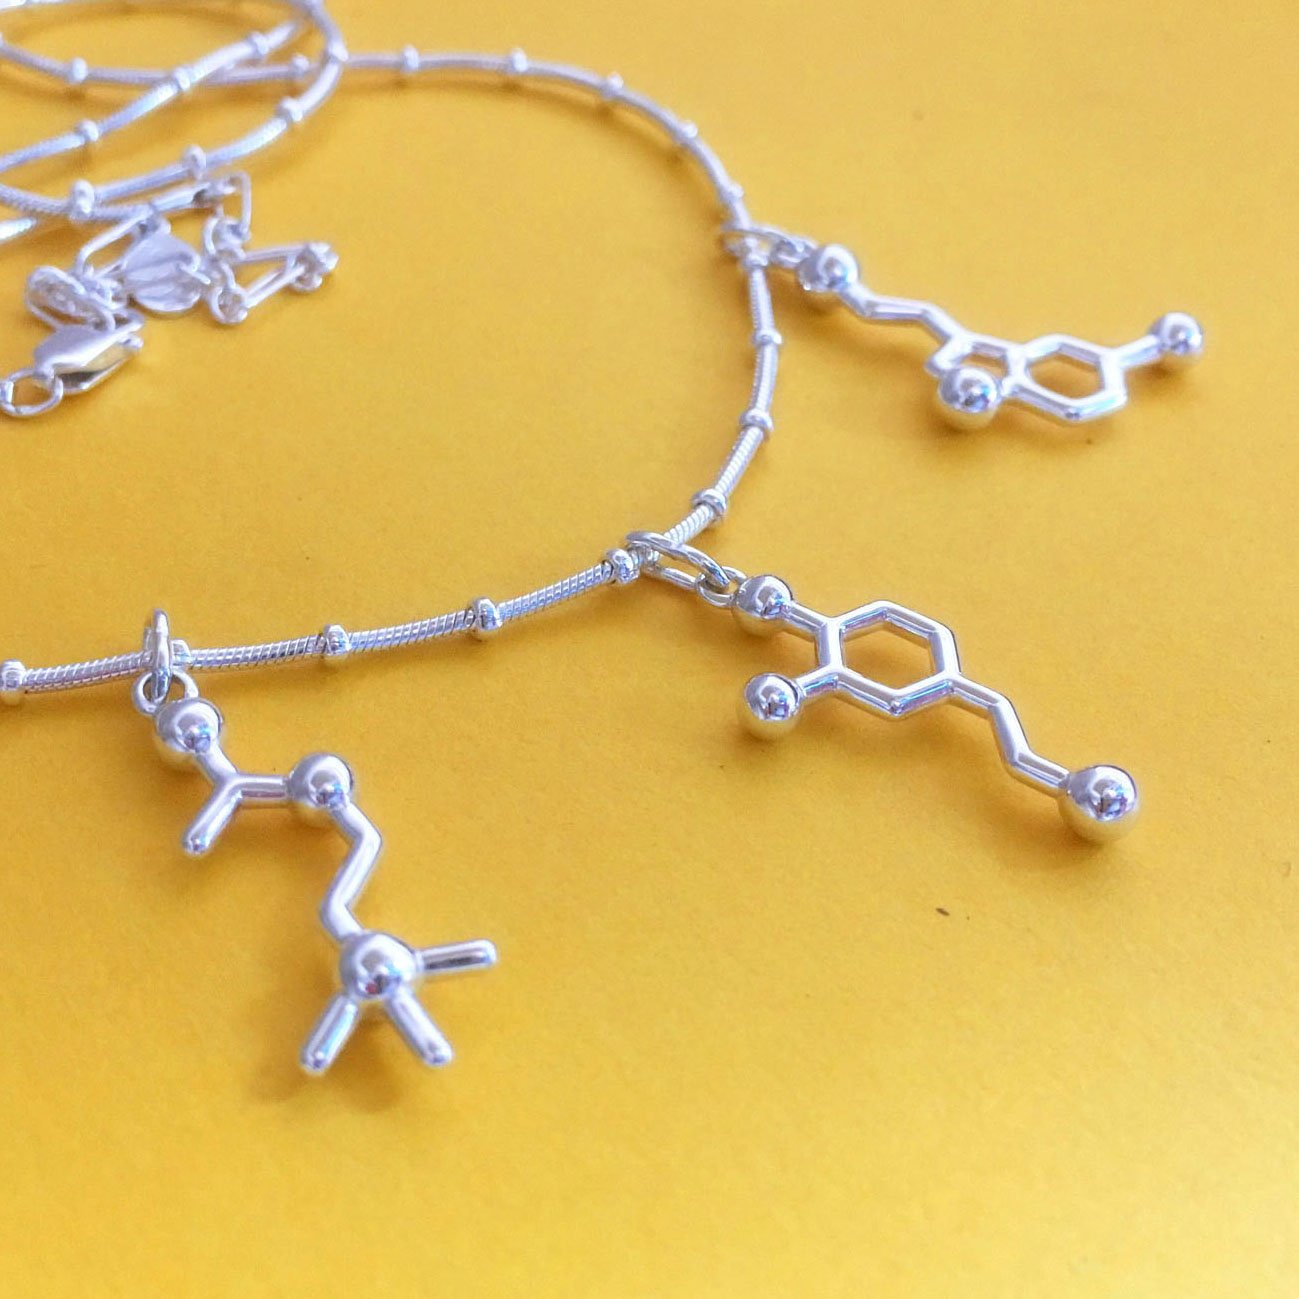 Creativity - Dopamine Serotonin Acetylcholine - Molecule Necklace in sterling silver by Made With Molecules